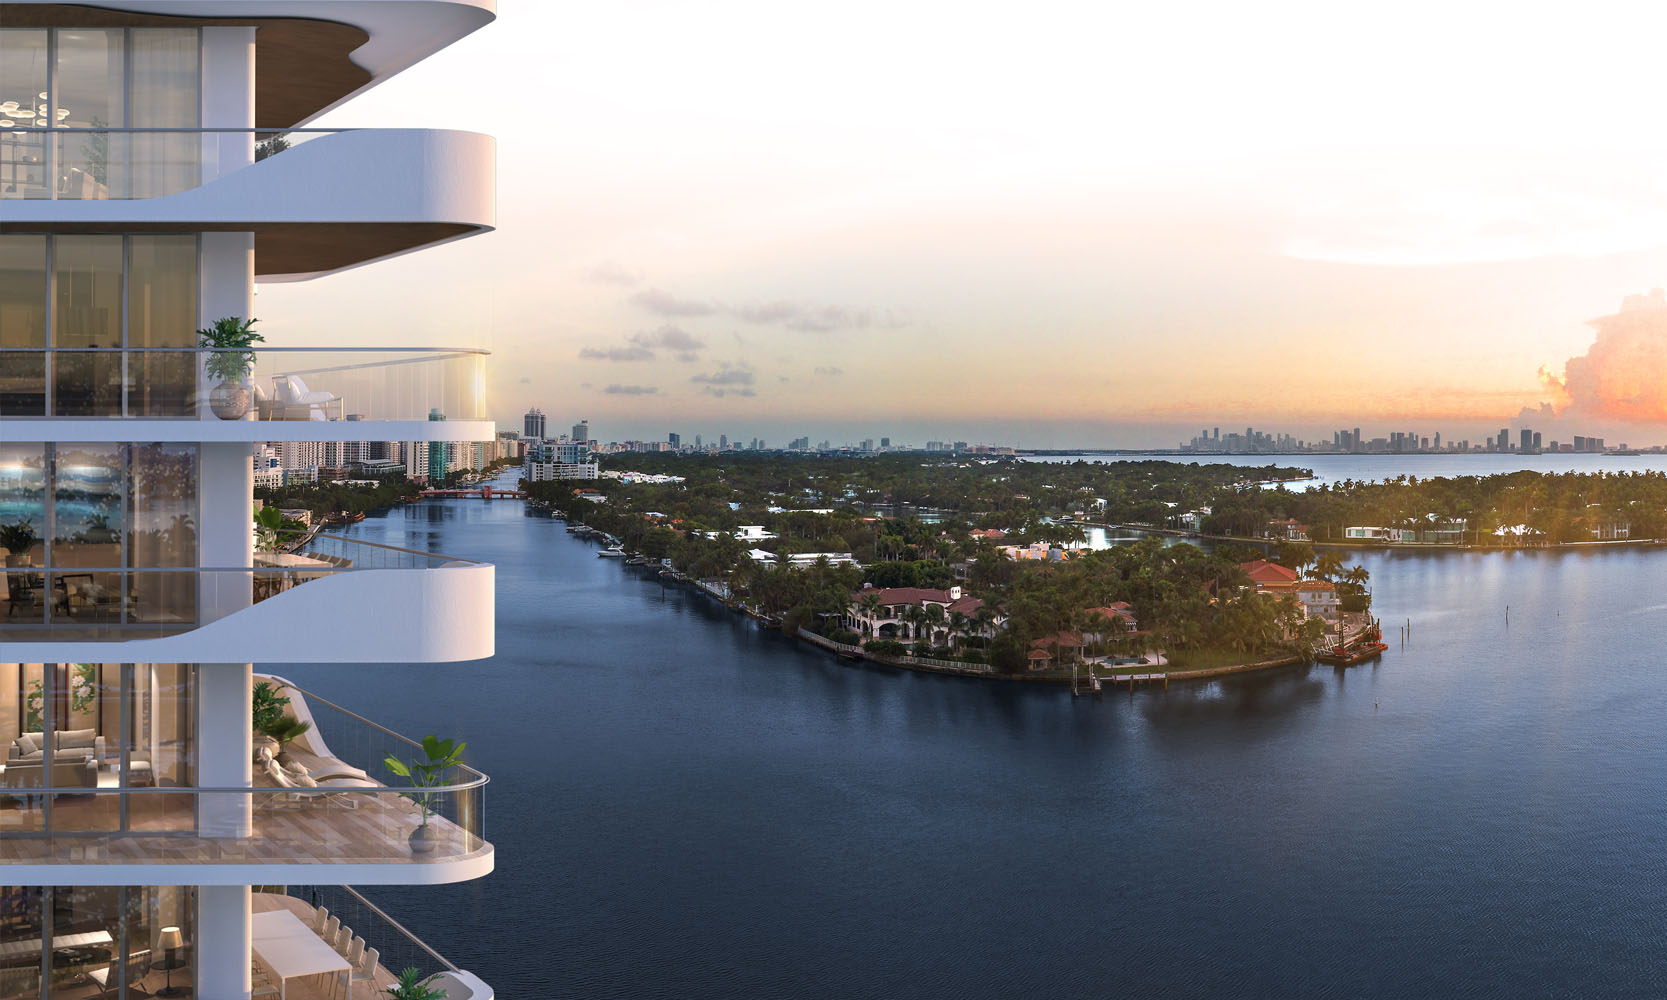 Bird's eye view of Monaco Yacht Club residence balcony with waterfront view. Has view of Miami beach.